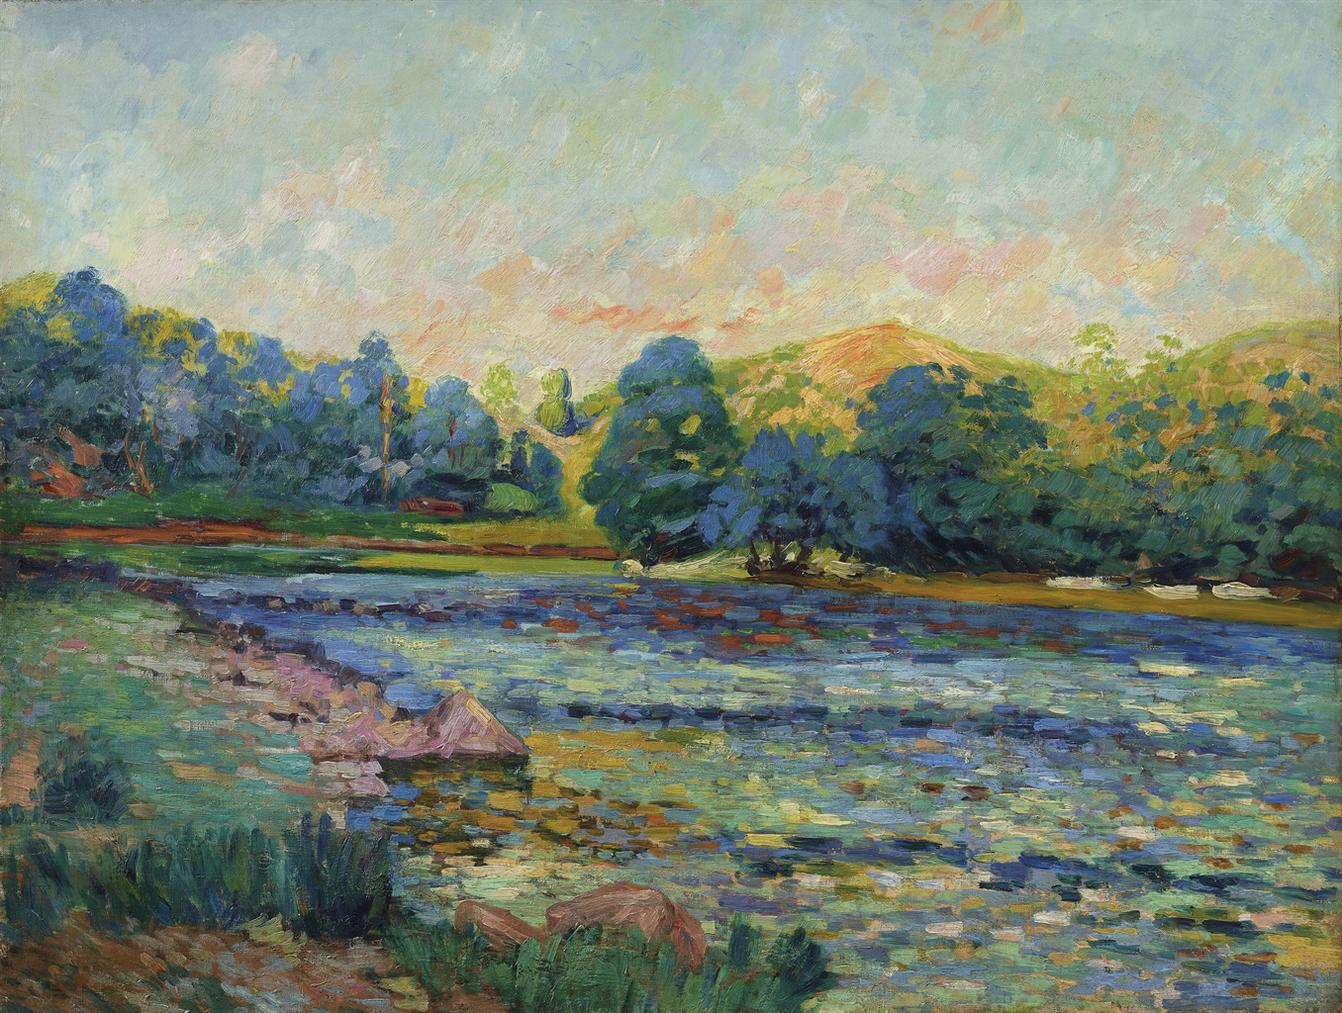 Jean-Baptiste Armand Guillaumin-Bords De Riviere-1905